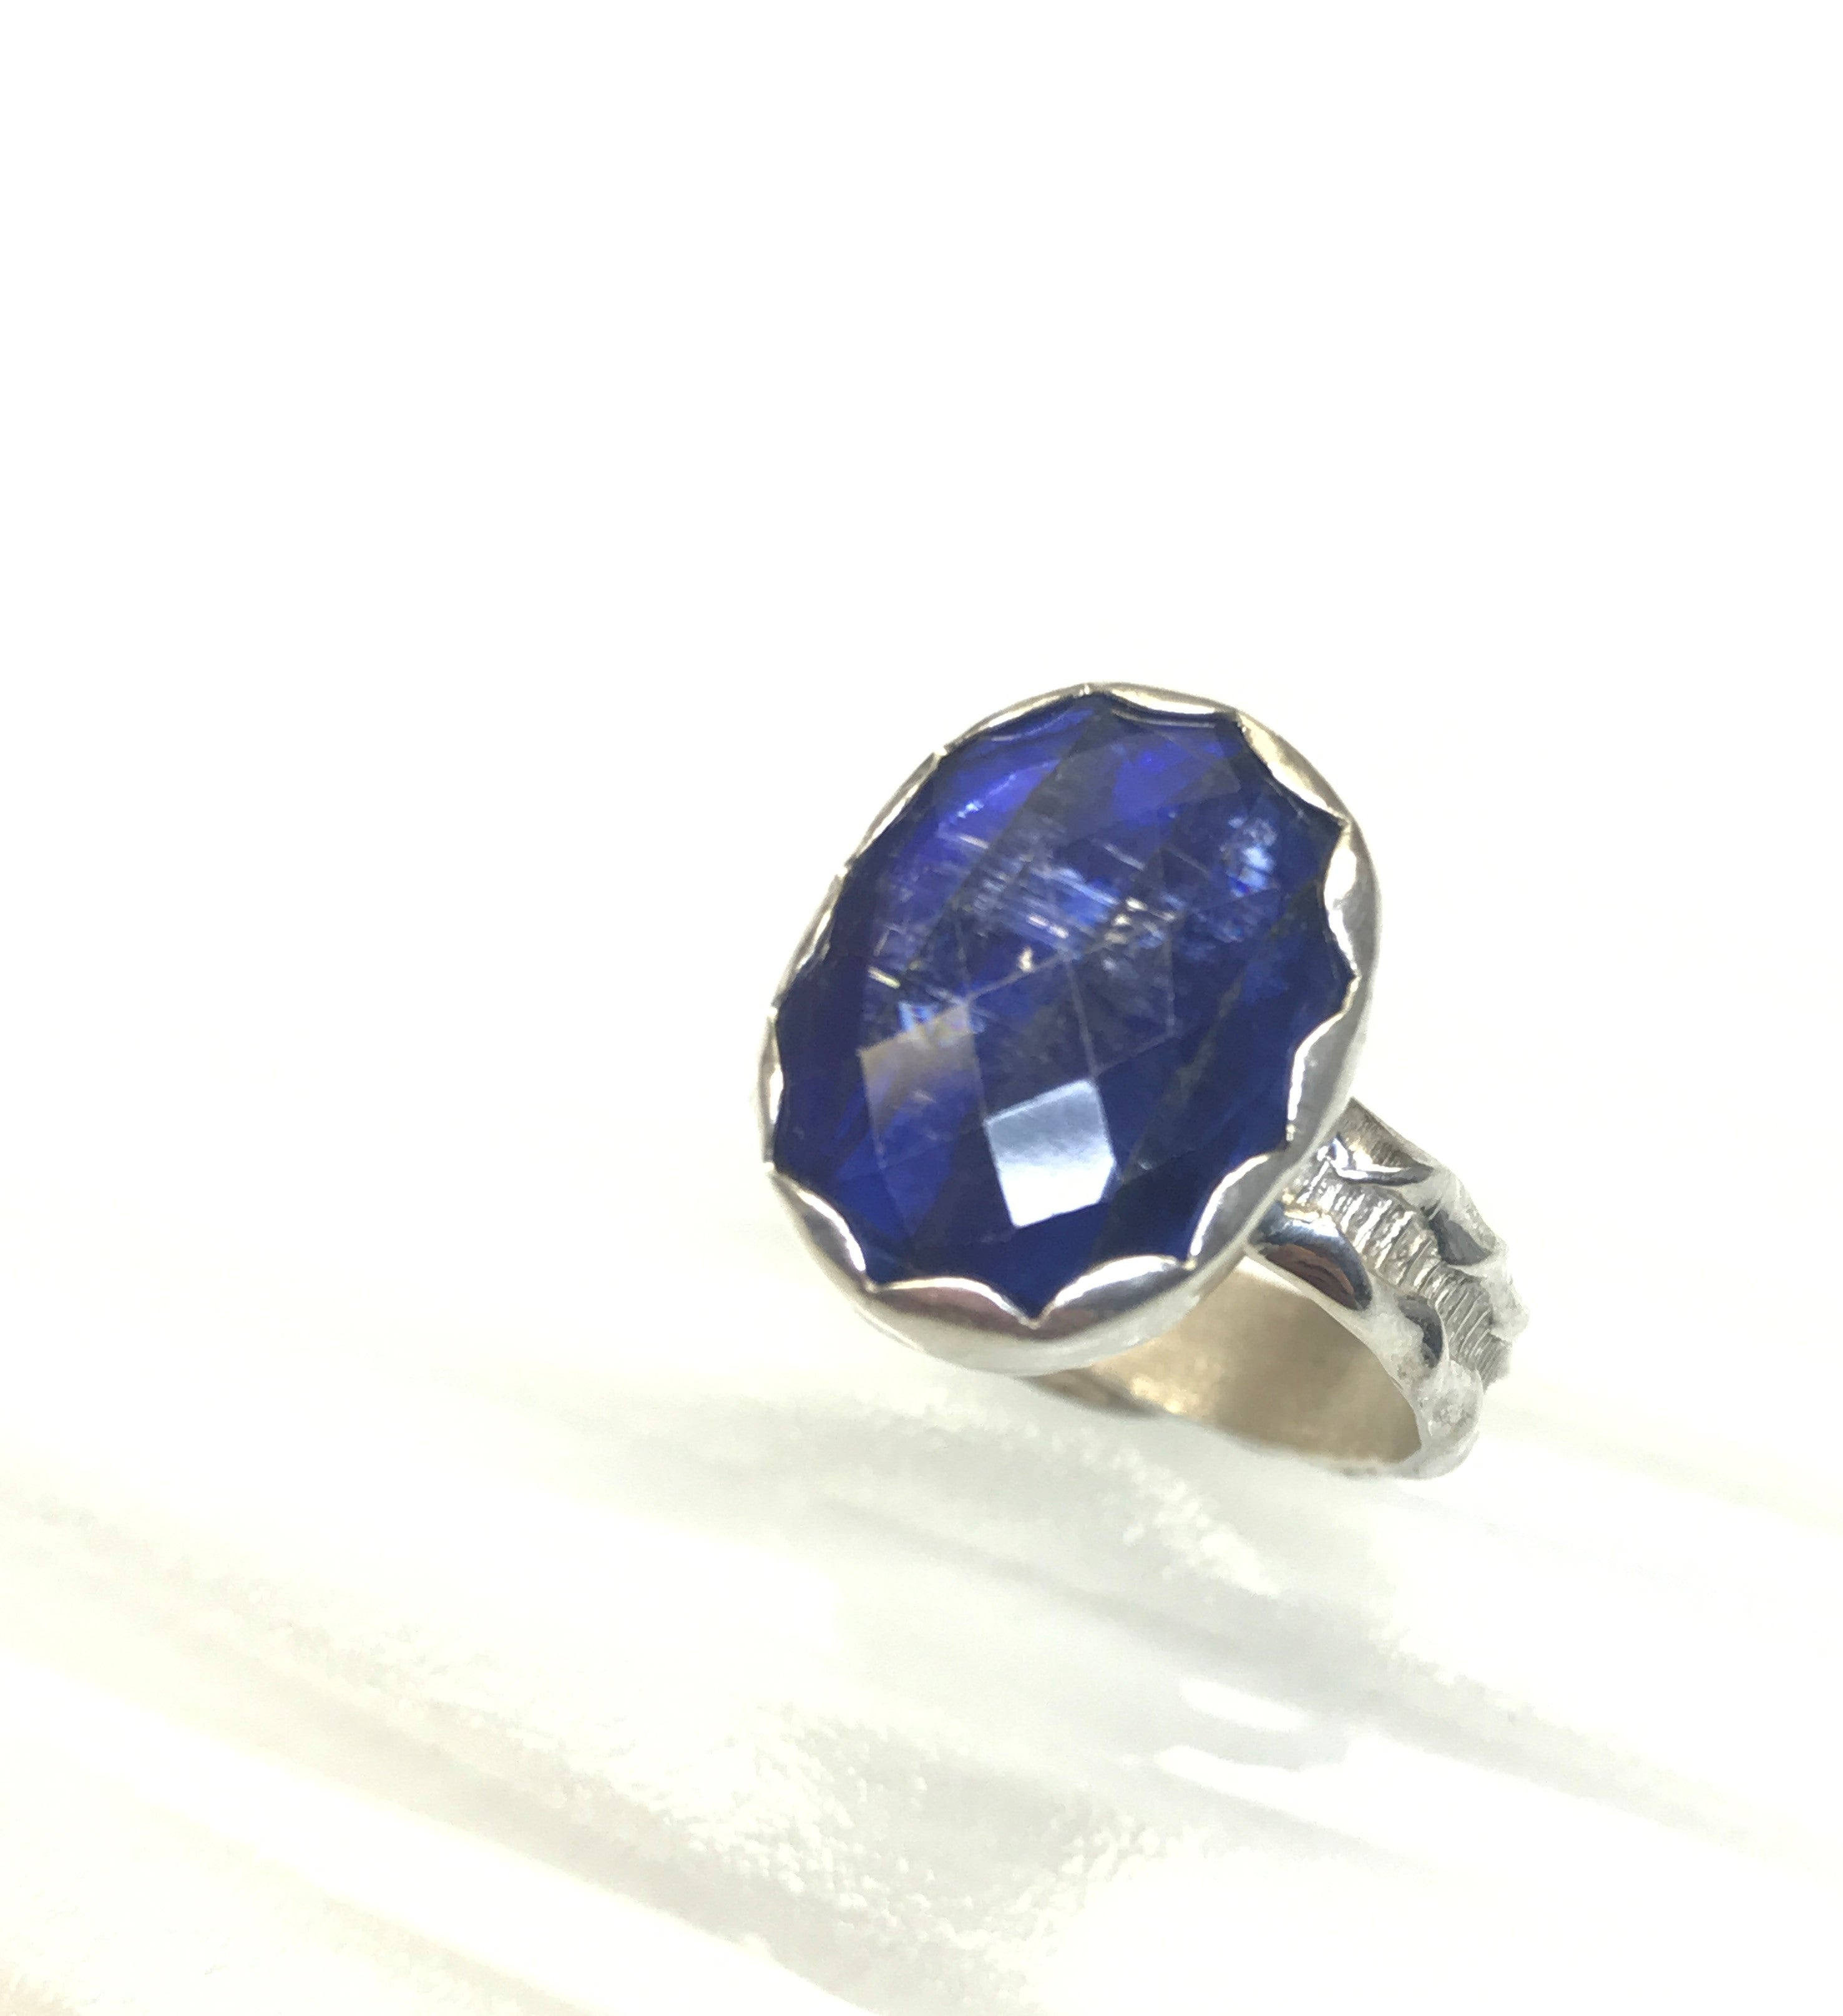 royal Blue Kyanite rose cut sterling silver ring.  The oval cut kyanite is a slighly smaller than an American nickel.  The blue is similar to a rich sapphire color.  A very pretty ring in a size 8